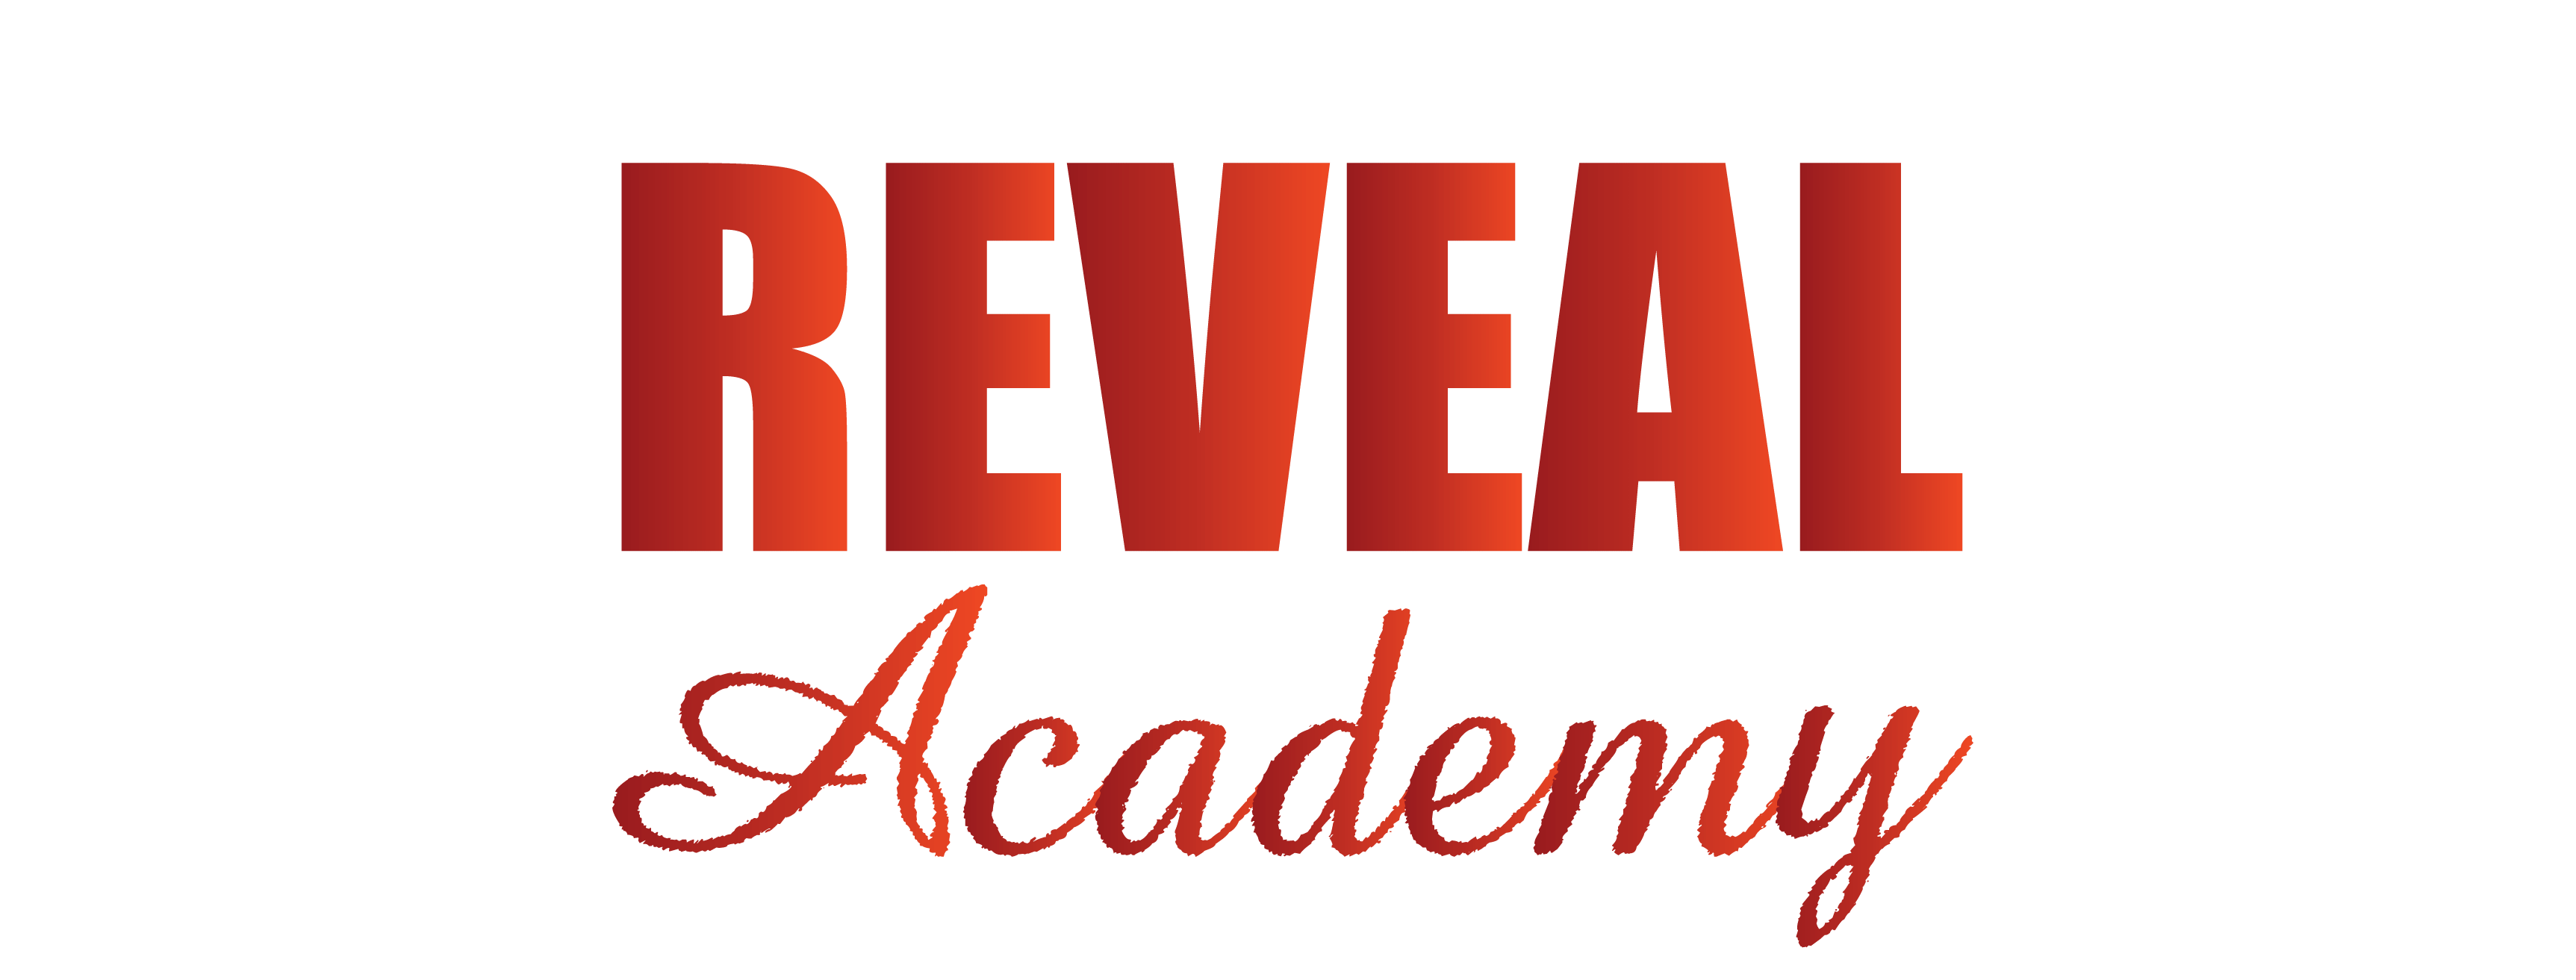 REVEAL Academy Logo